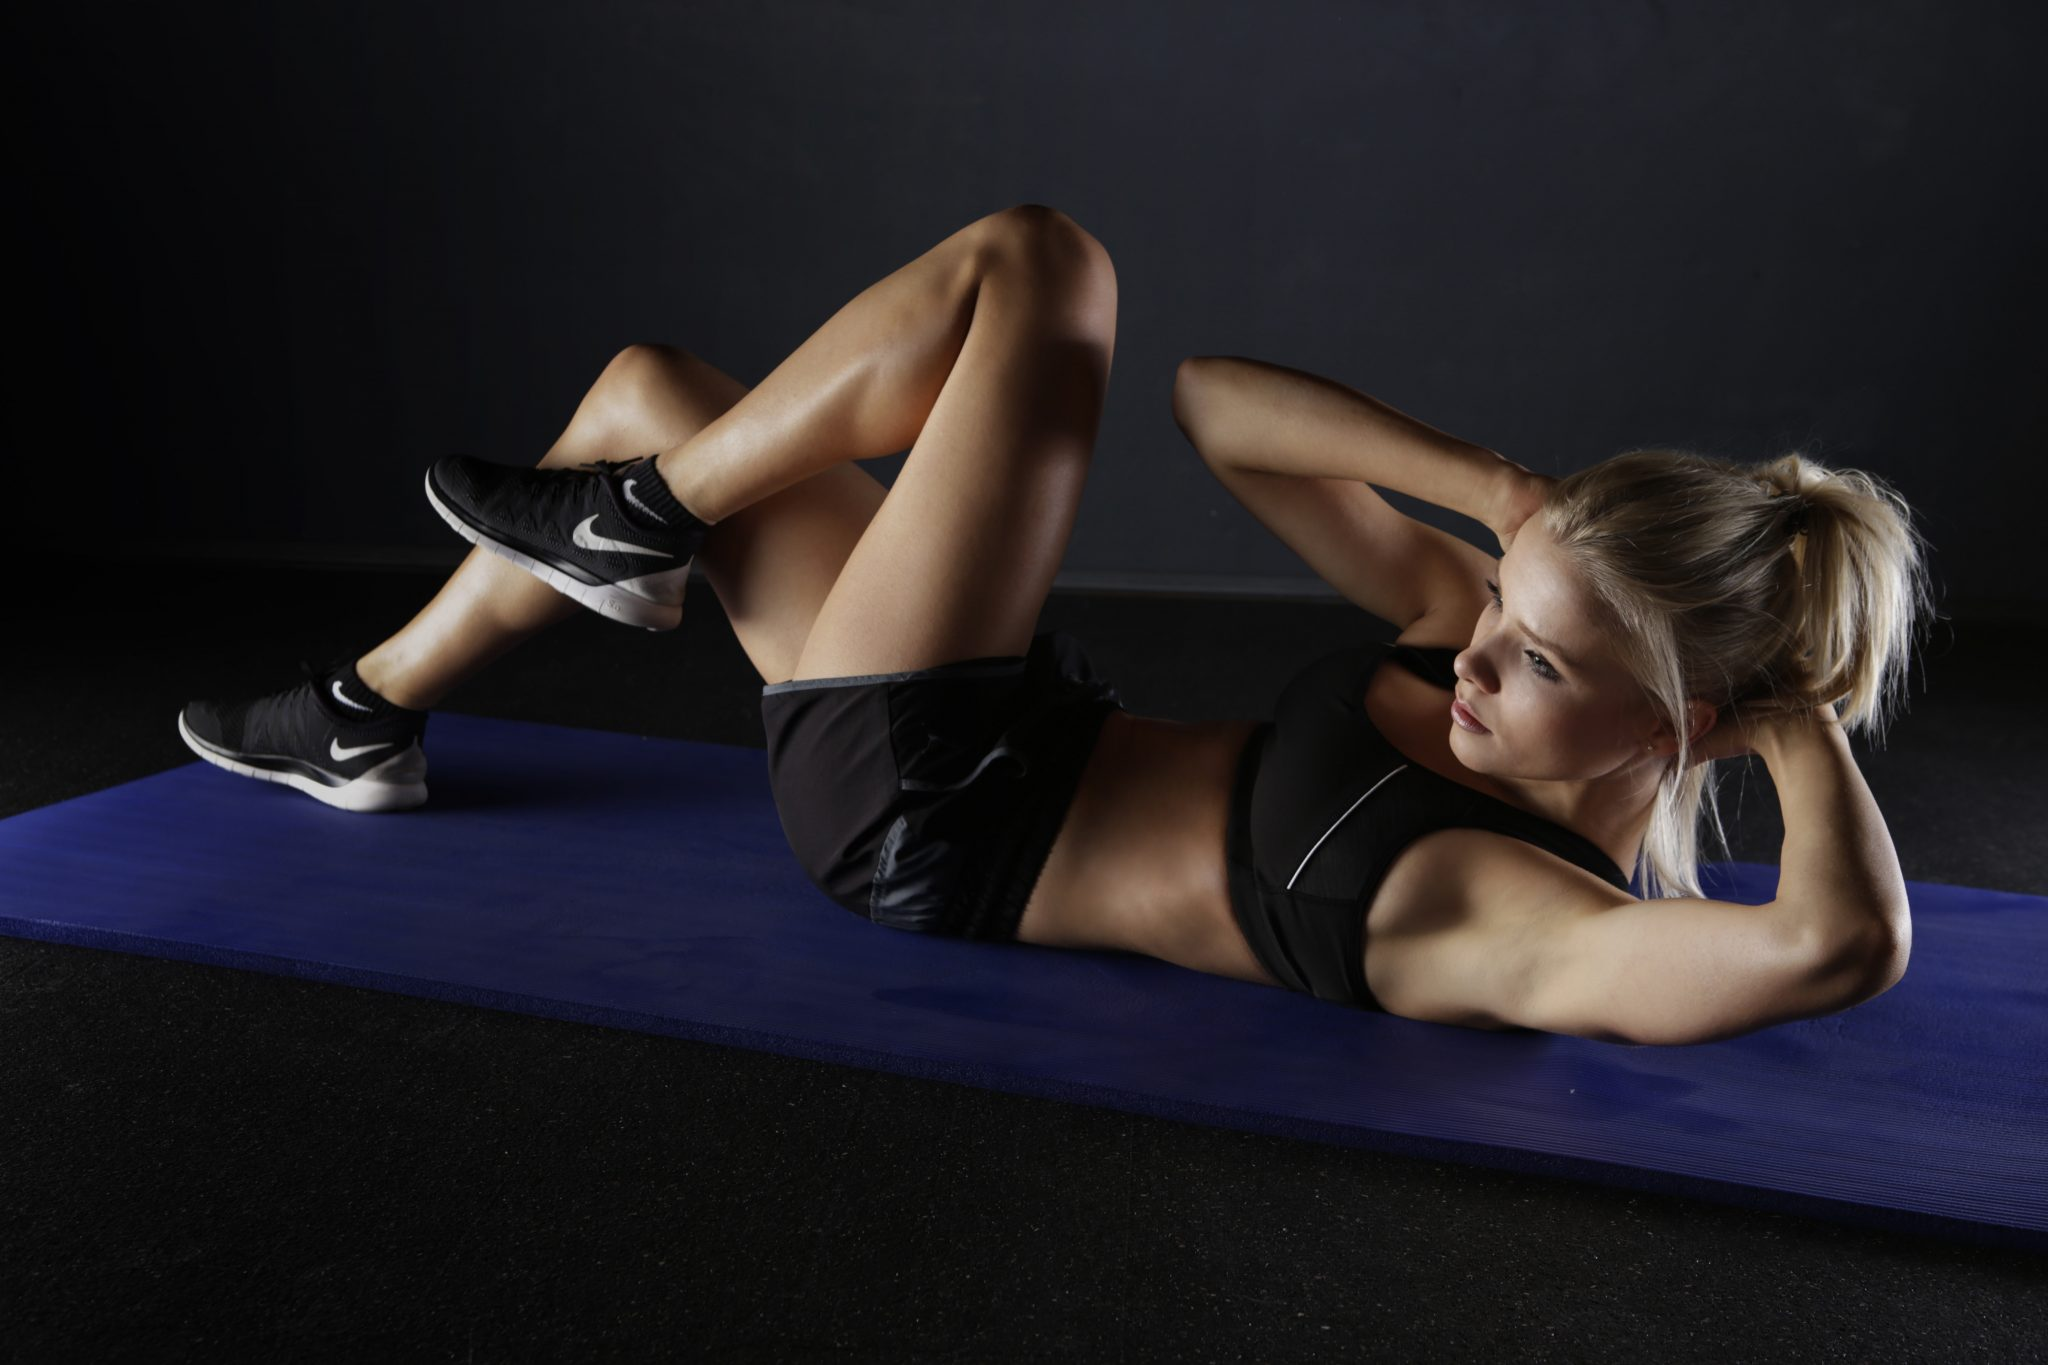 Athlete girl working out